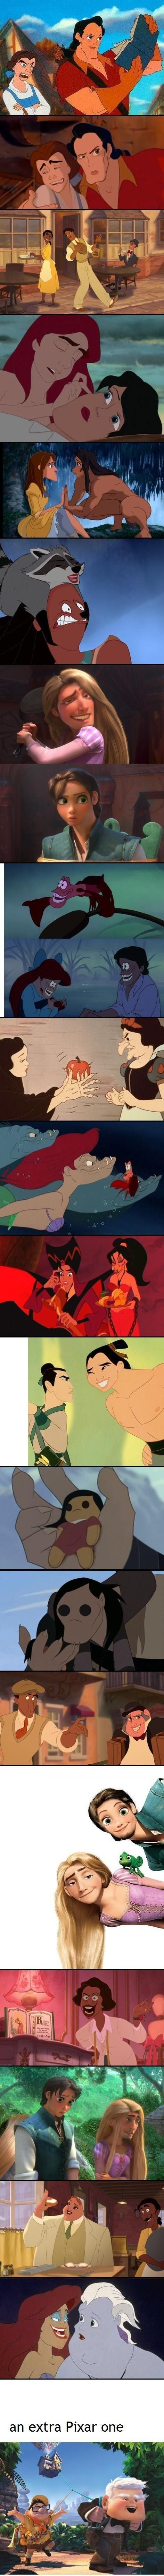 Disney Face Swaps ... the Pocahontas one made me laugh for real